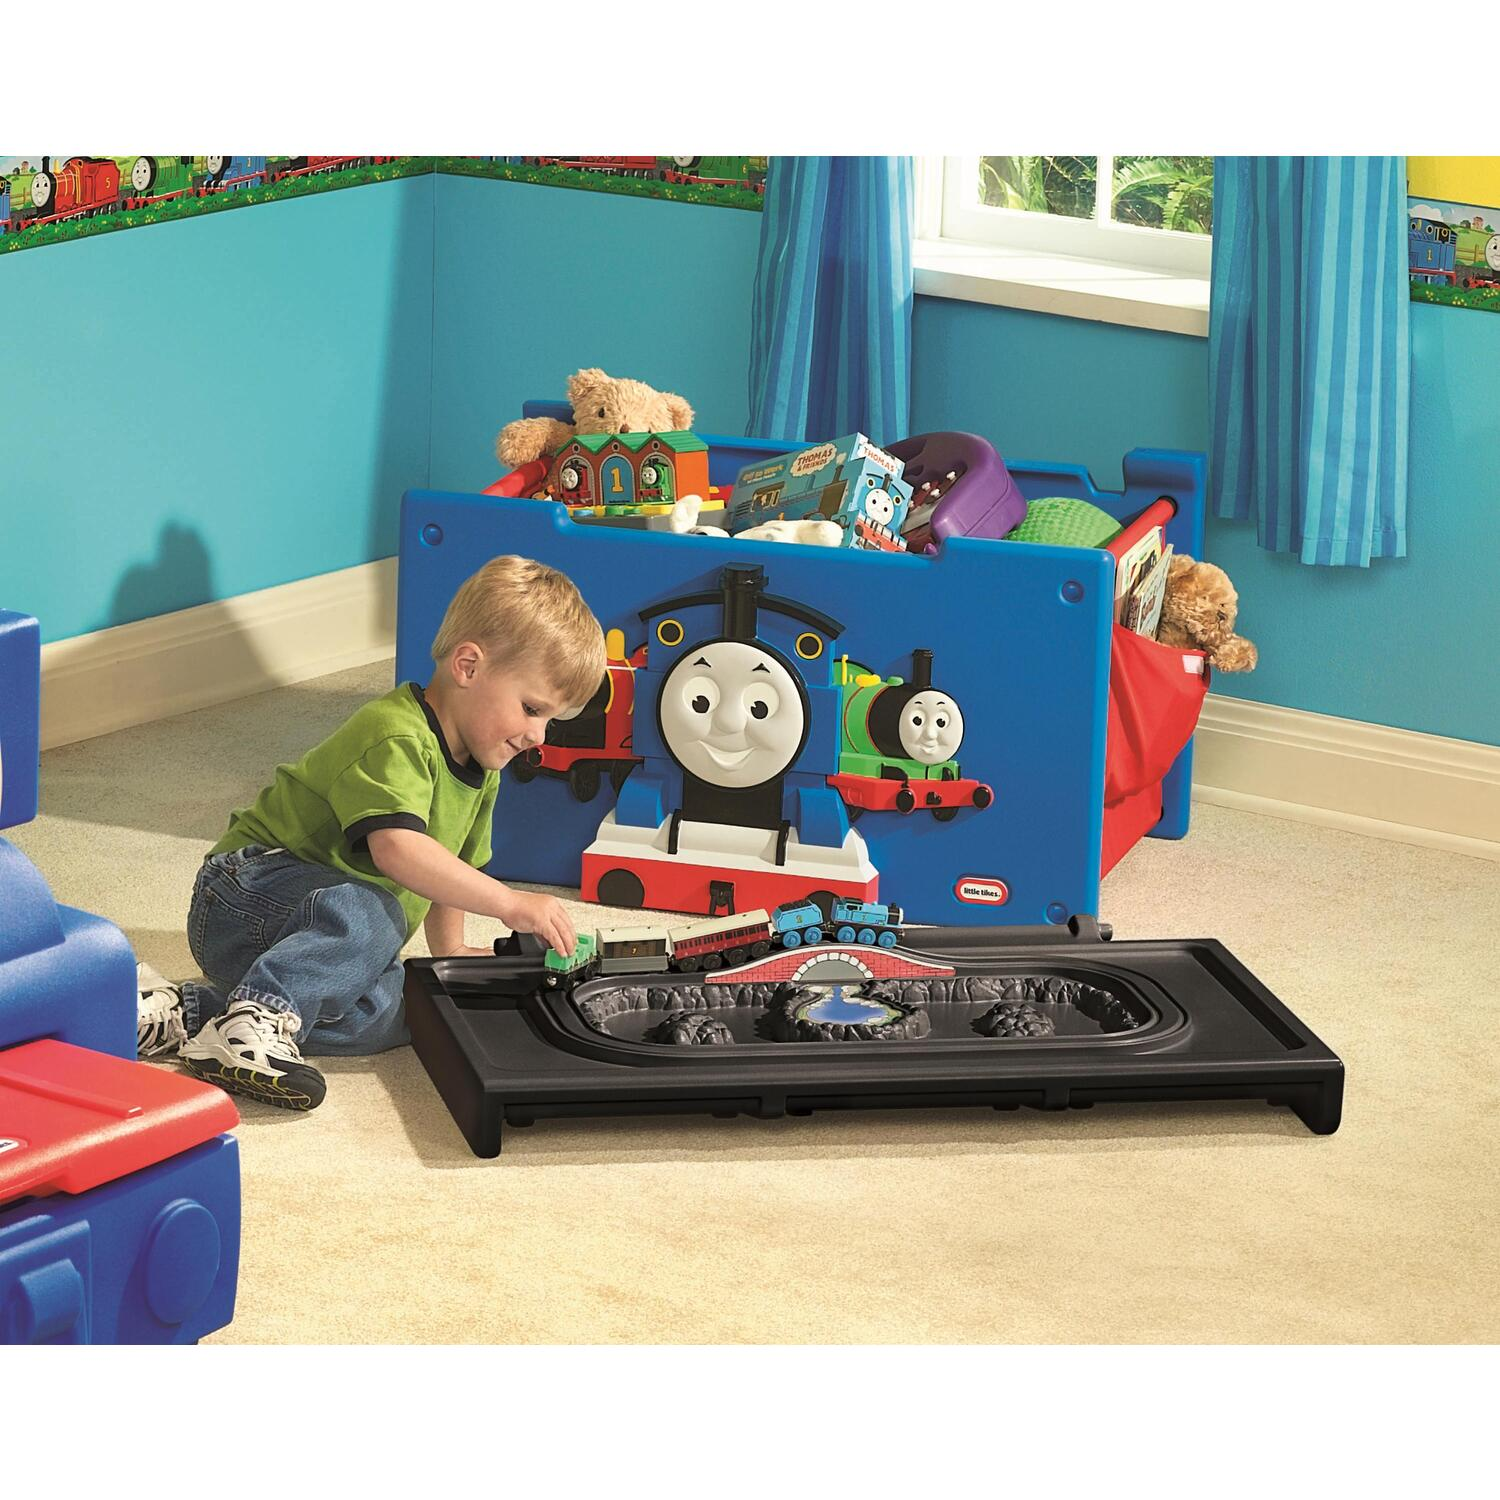 Related Images With Thomas The Train Bedroom Set